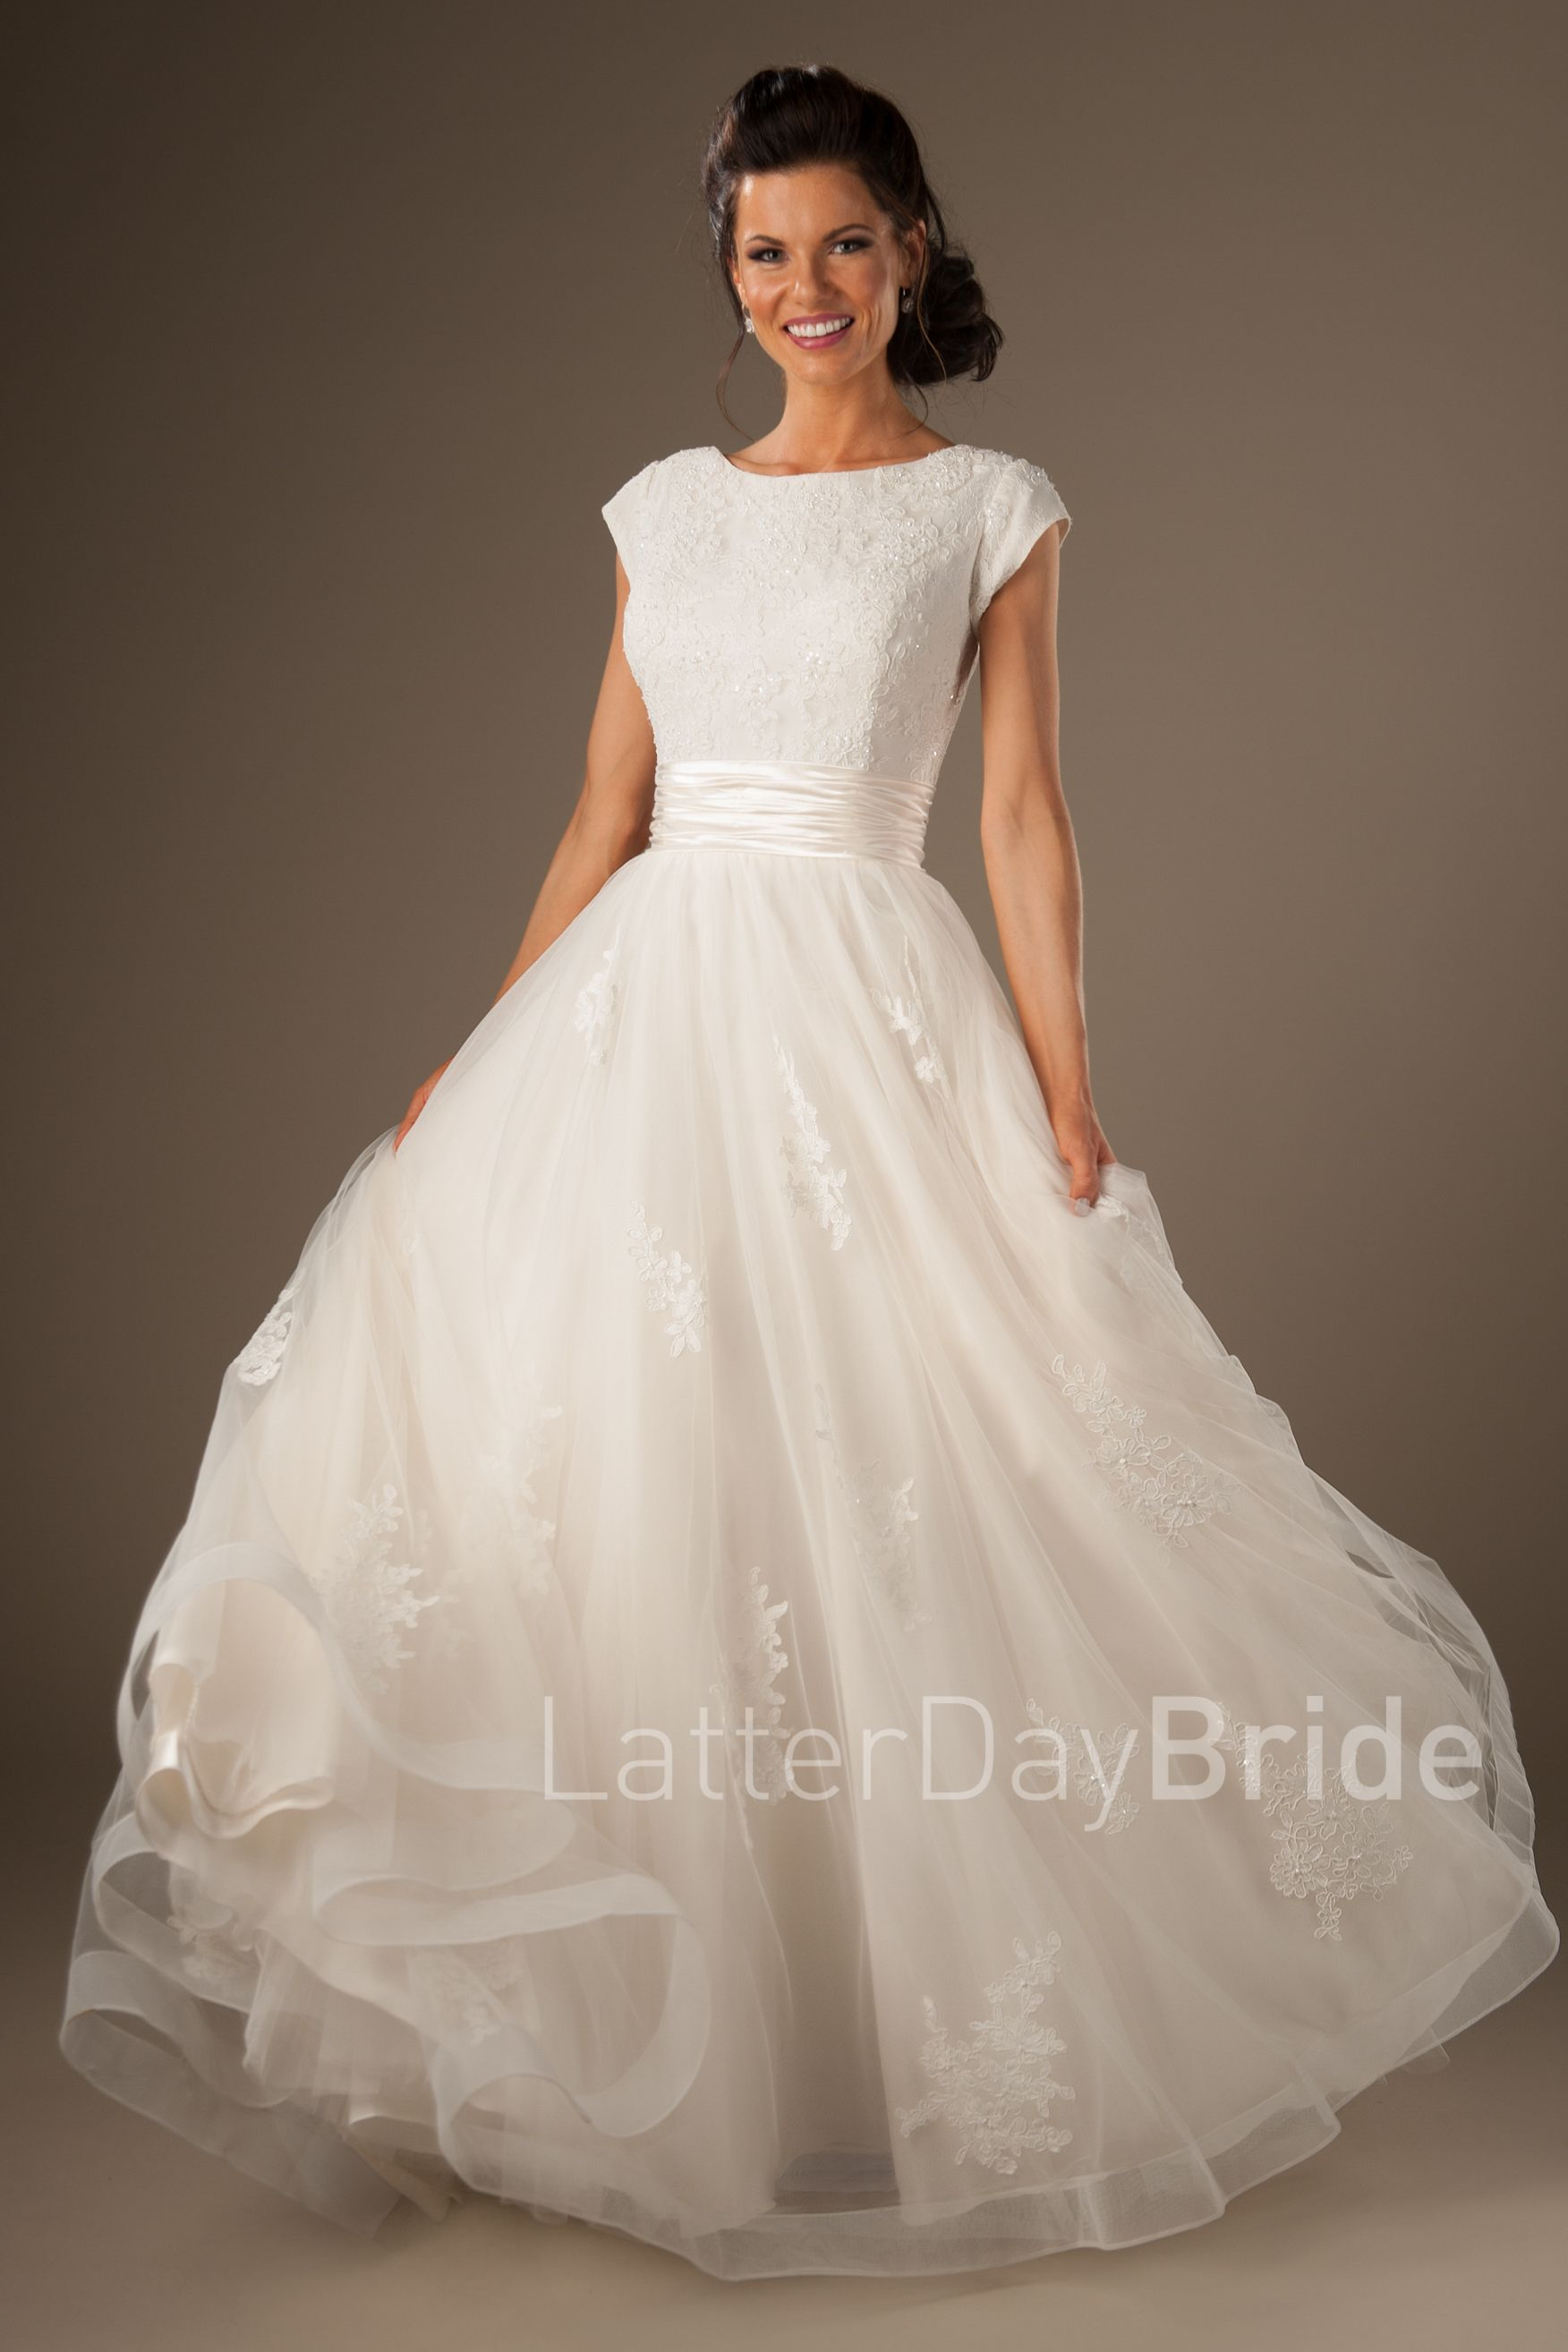 Lorelai- Modest Ball Gown- $1305 Latterday Bride Collection, found ...